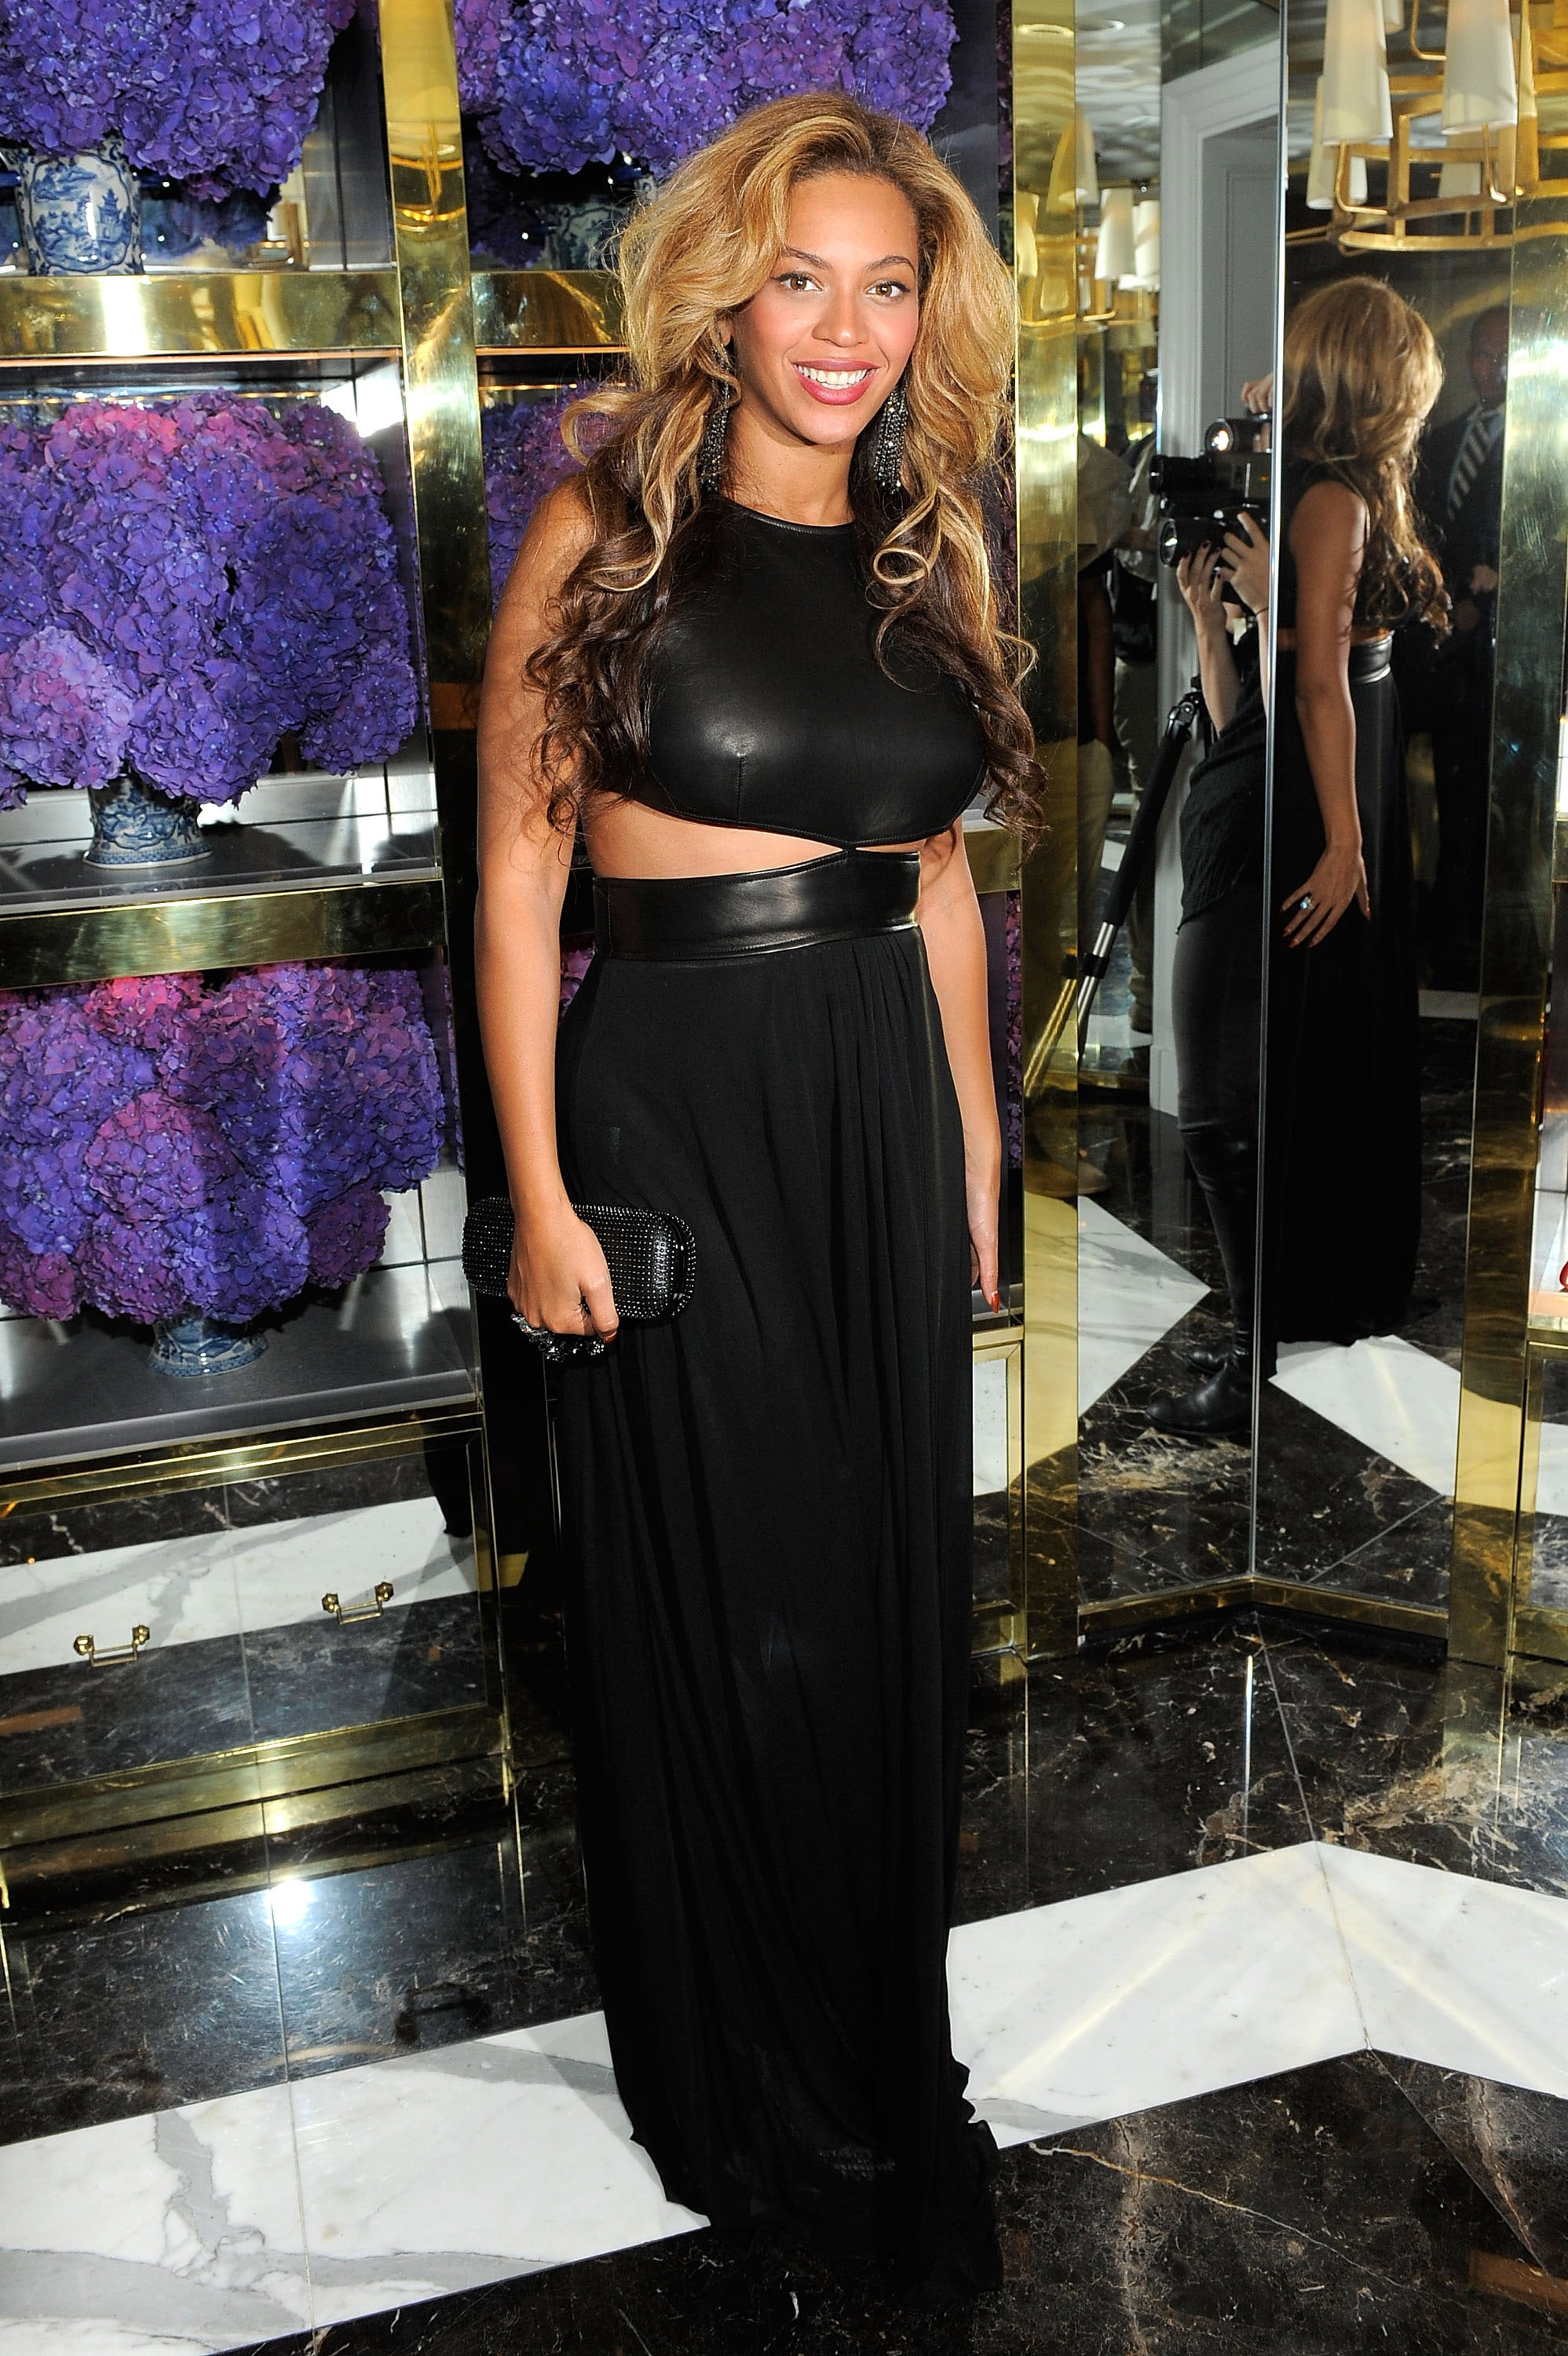 Beyoncé Knowles at Tory Burch flagship store.